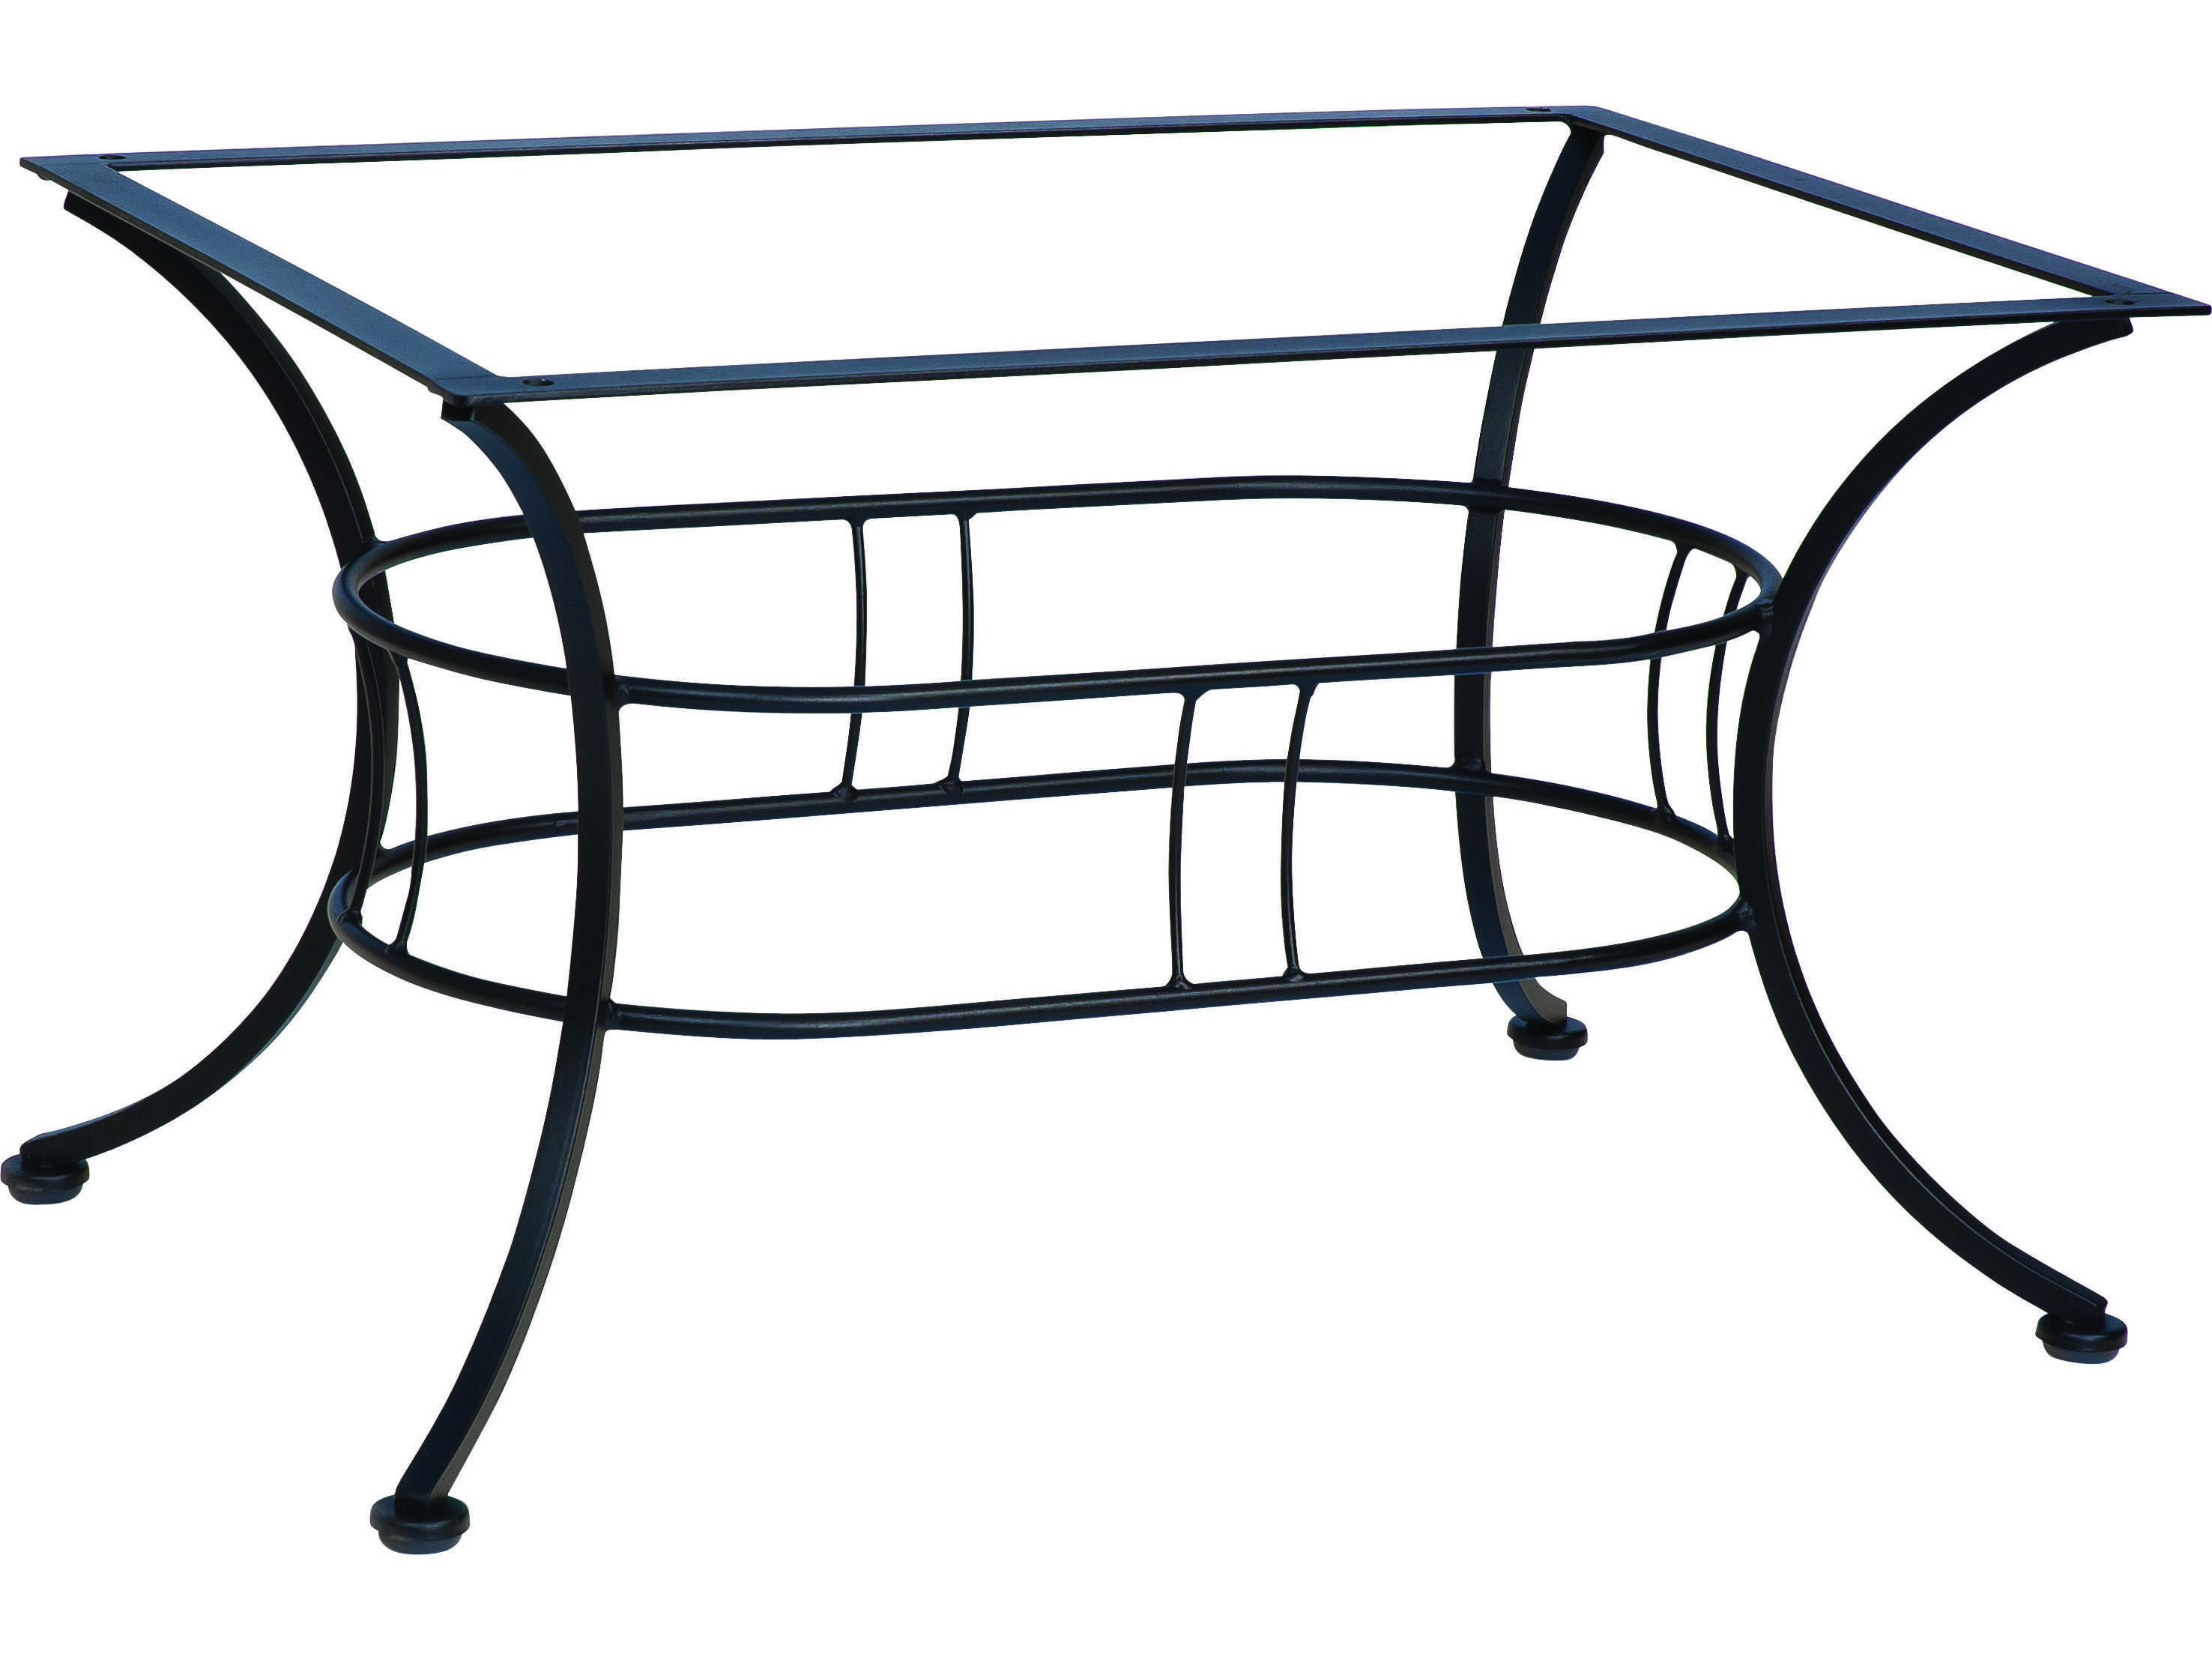 Woodard easton wrought iron coffee table base 1n4500 Wrought iron coffee table bases